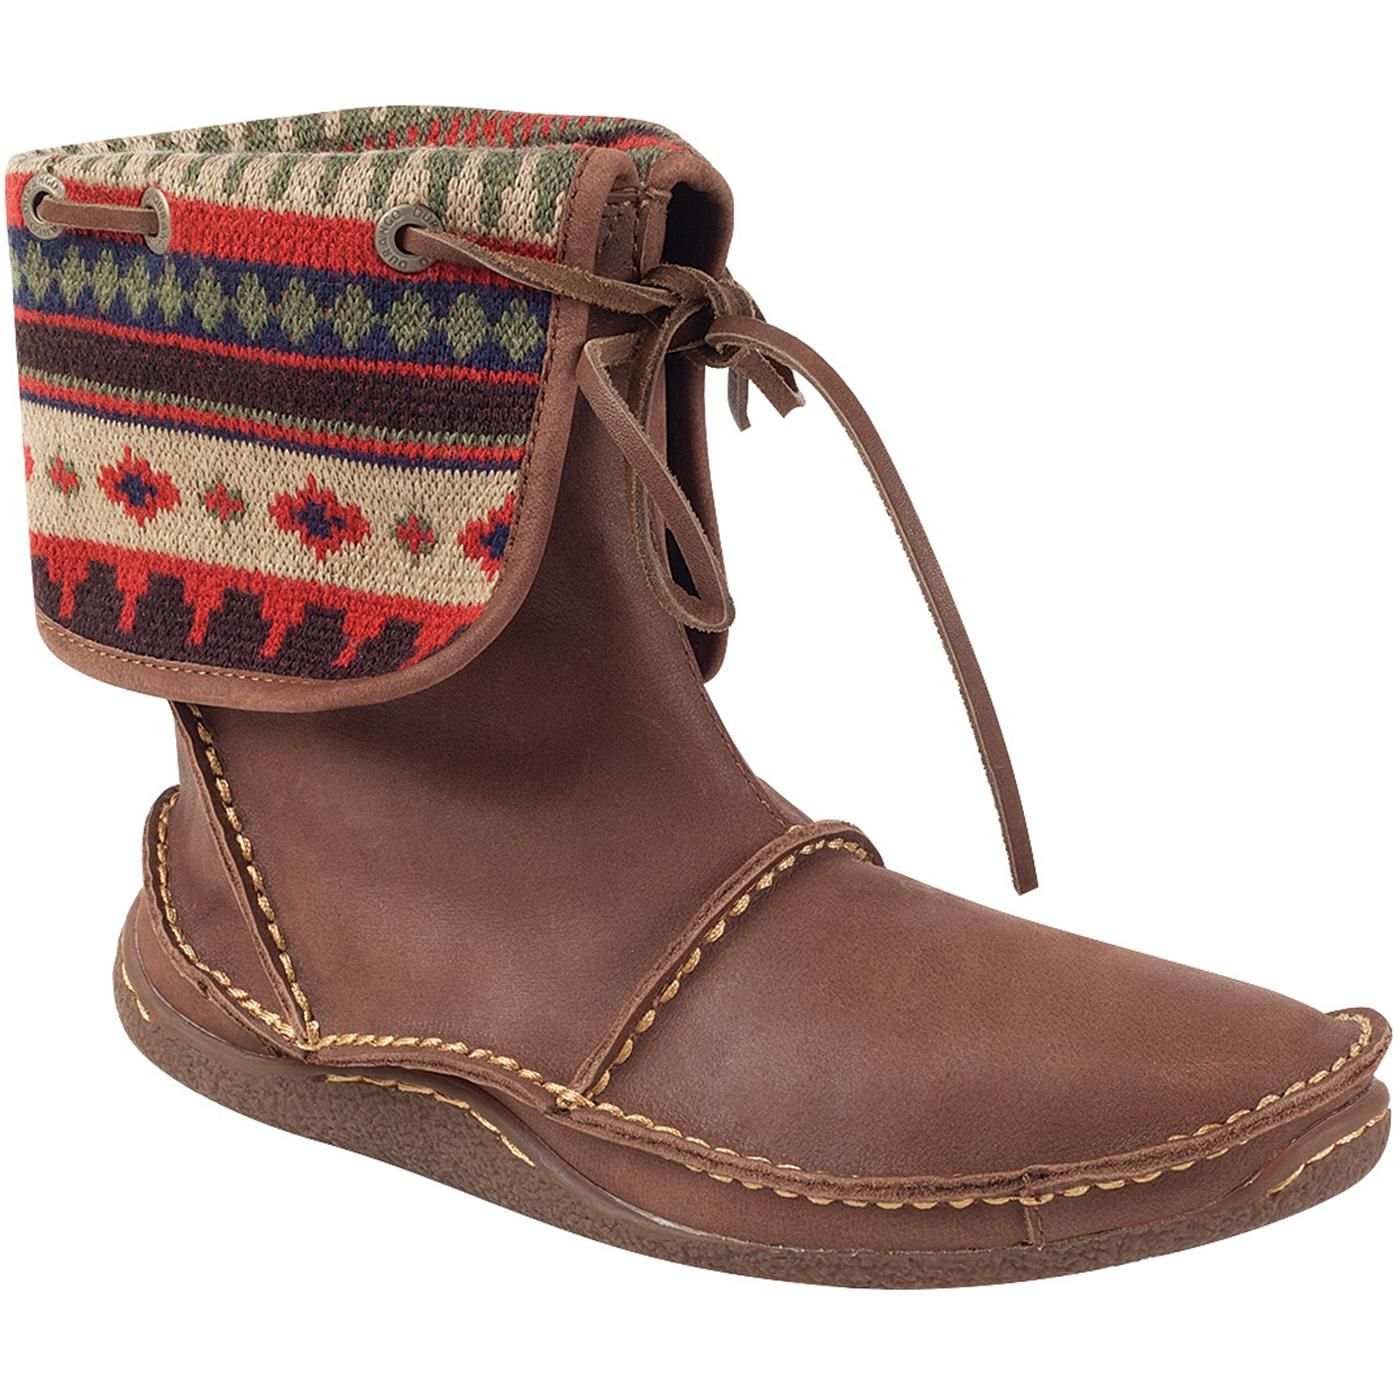 Durango Womens Santa Fe Ankle Moccasin Boots Moccasins Shoe